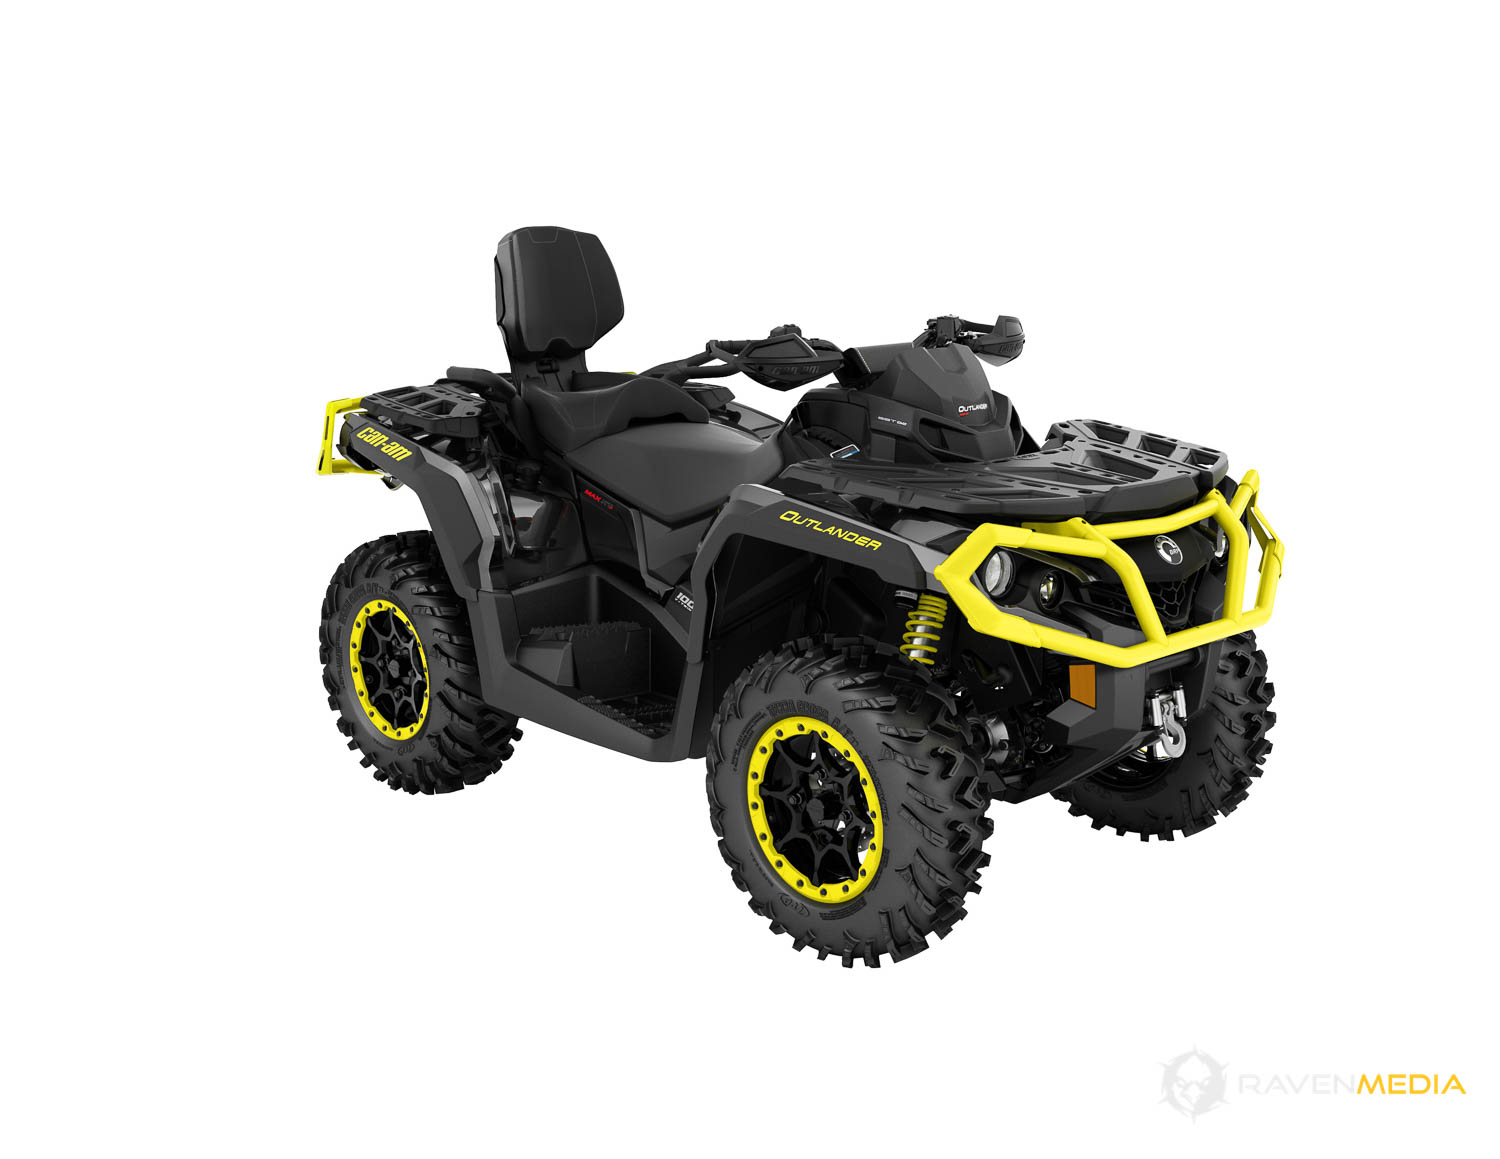 CAN AM OUTLANDER 1000 MAX XT-P 2019